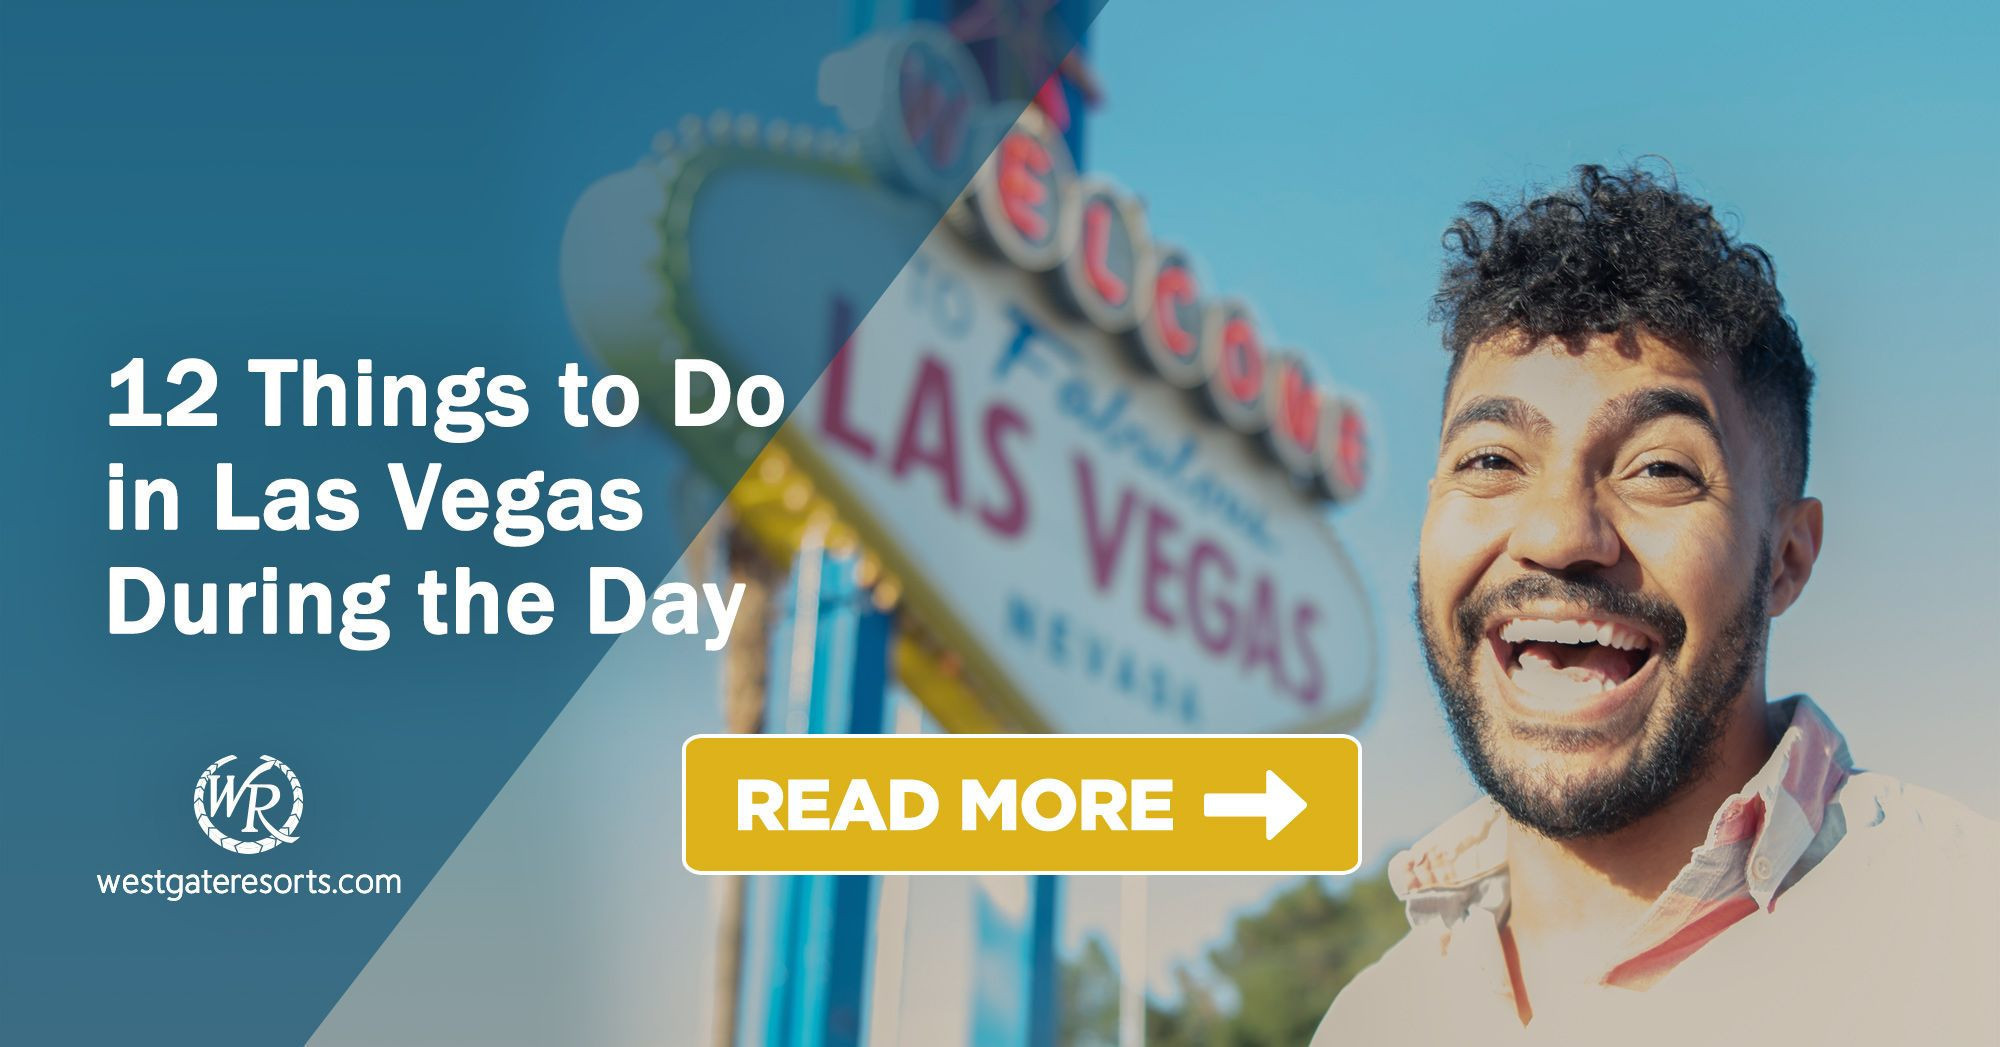 12 Things to Do in Las Vegas During the Day